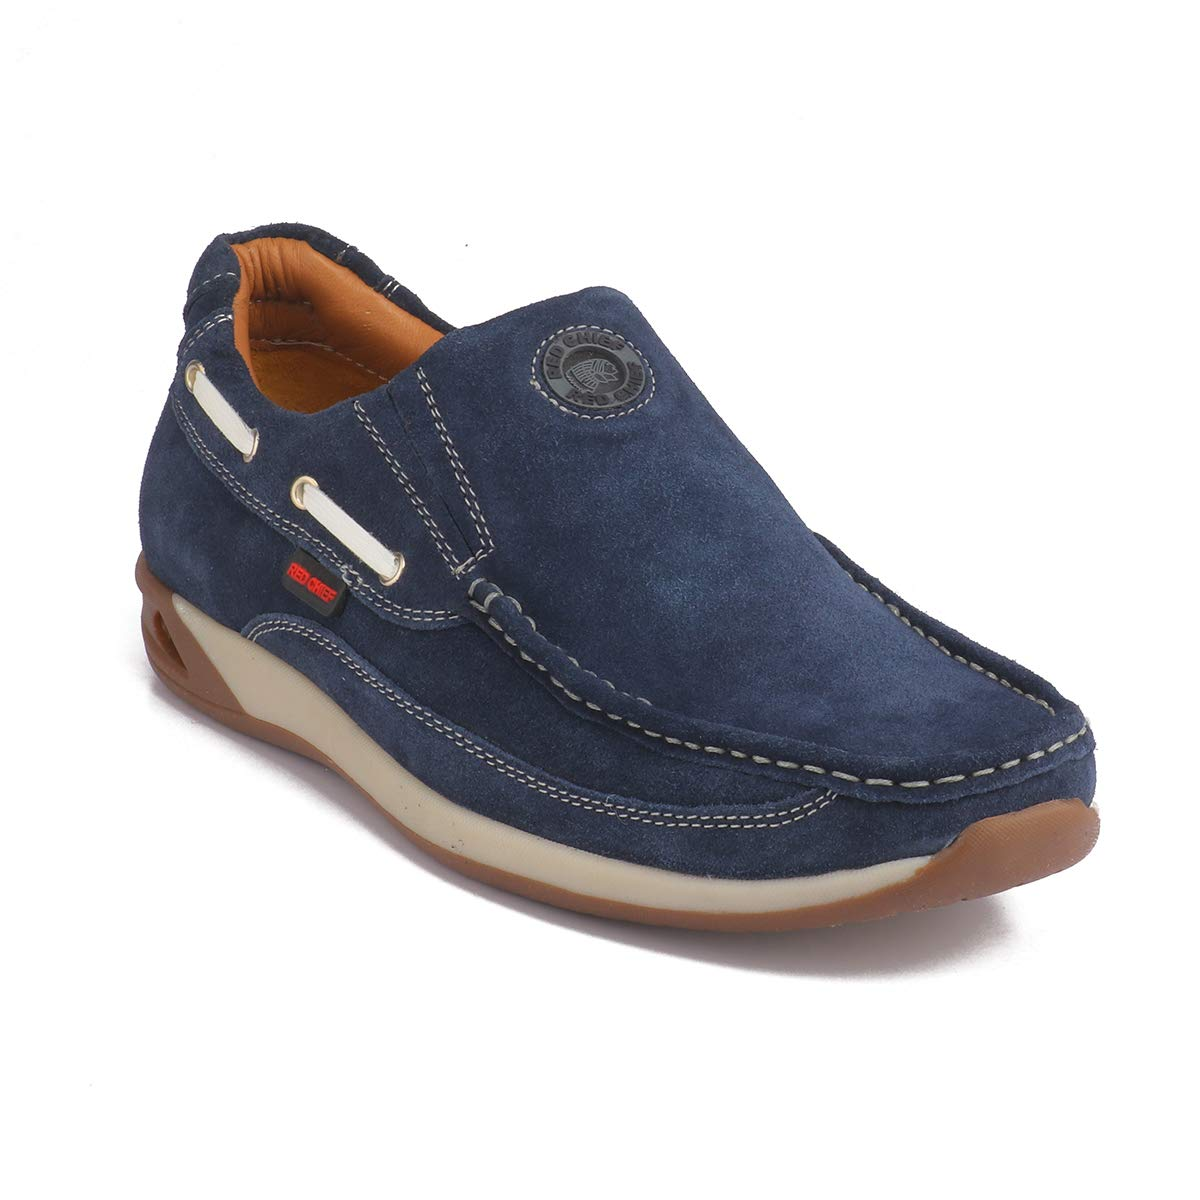 Best casual shoes under 5000 for men in India